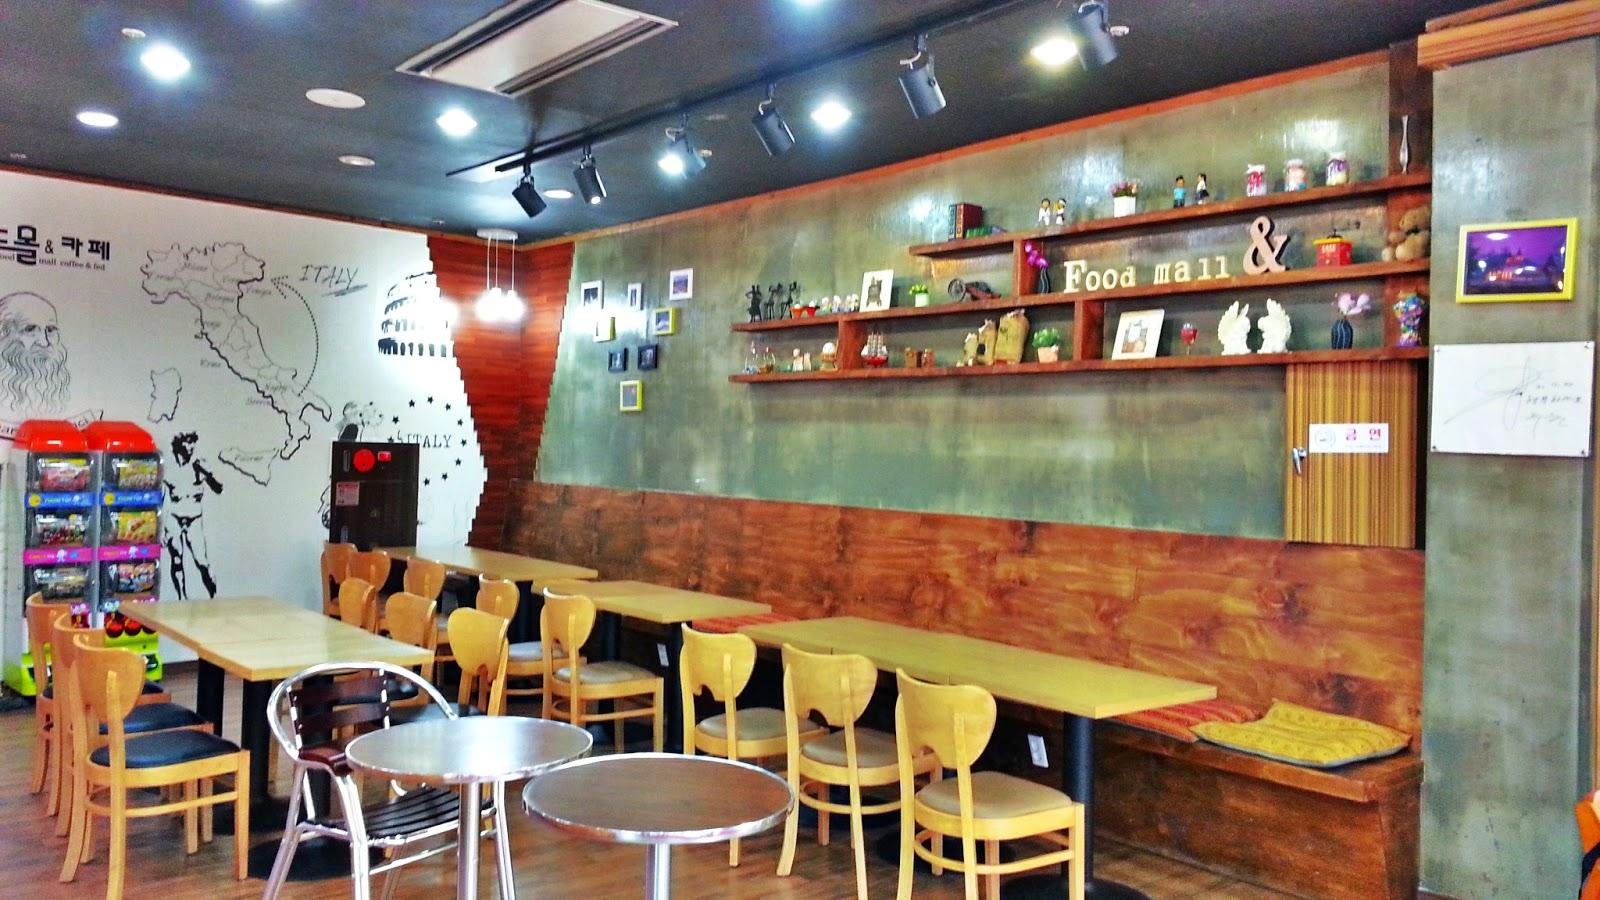 Muju Ski Resort - Zephyr coffee 제퍼커피 | meheartseoul.blogspot.com